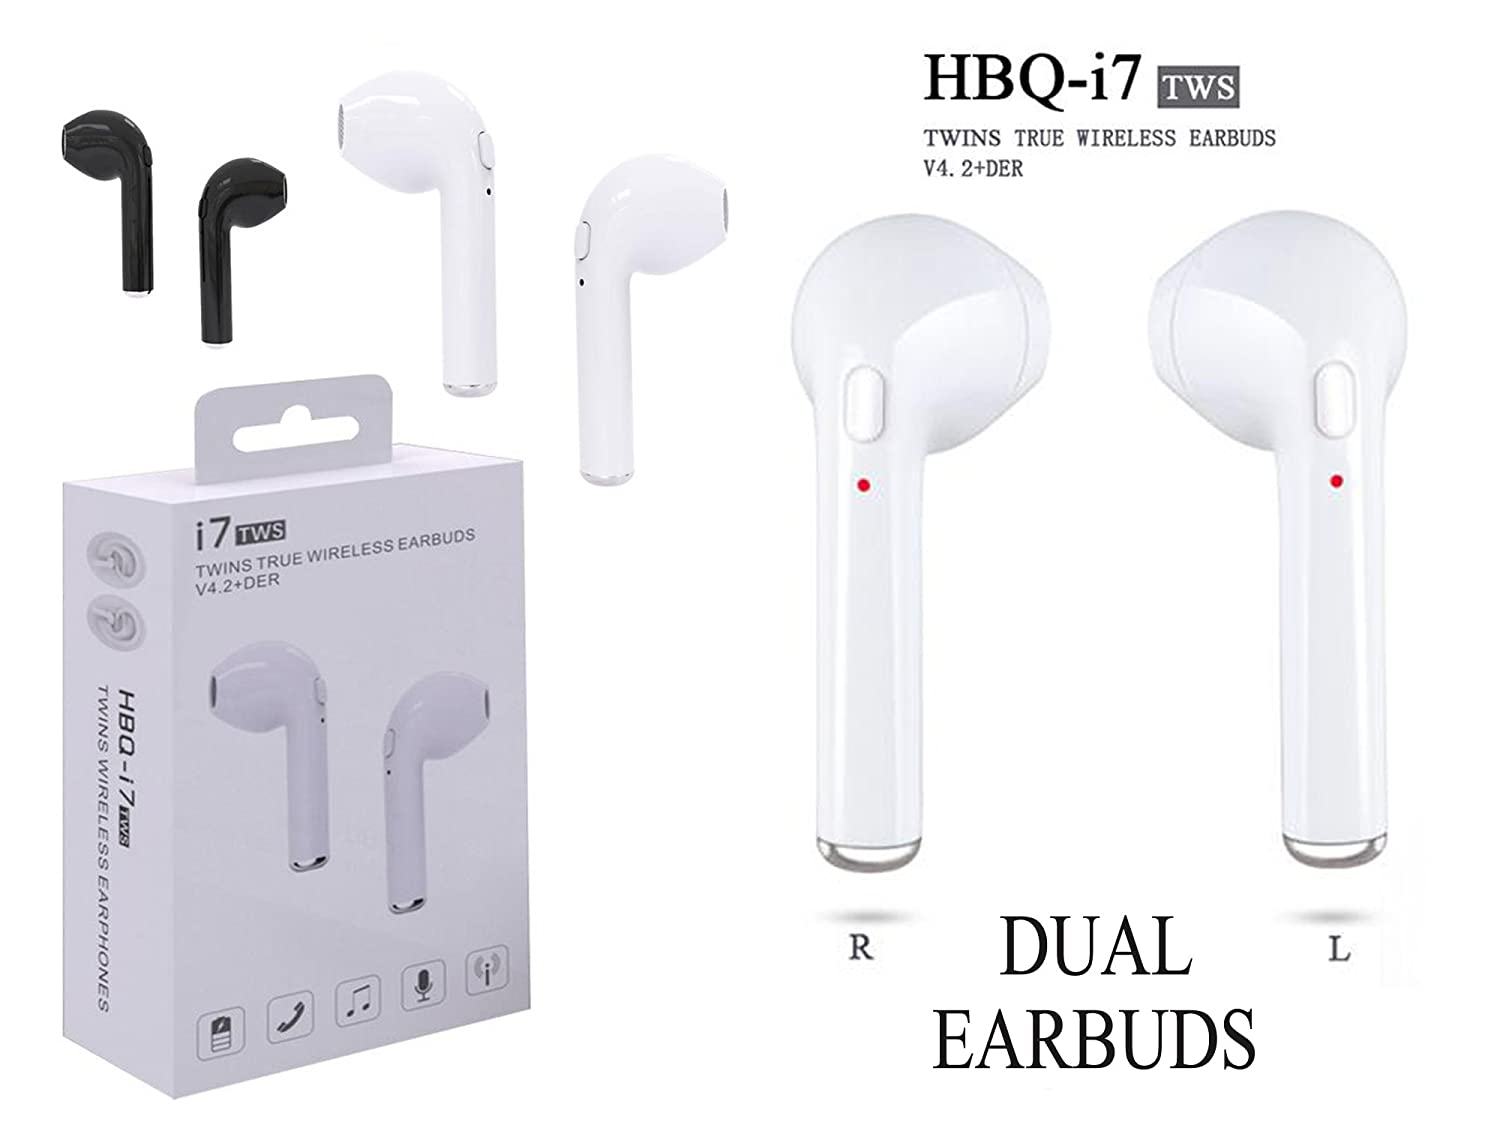 HBQ i7 TWS Twins True Wireless Earbuds Mini Bluetooth: Amazon.in: Electronics